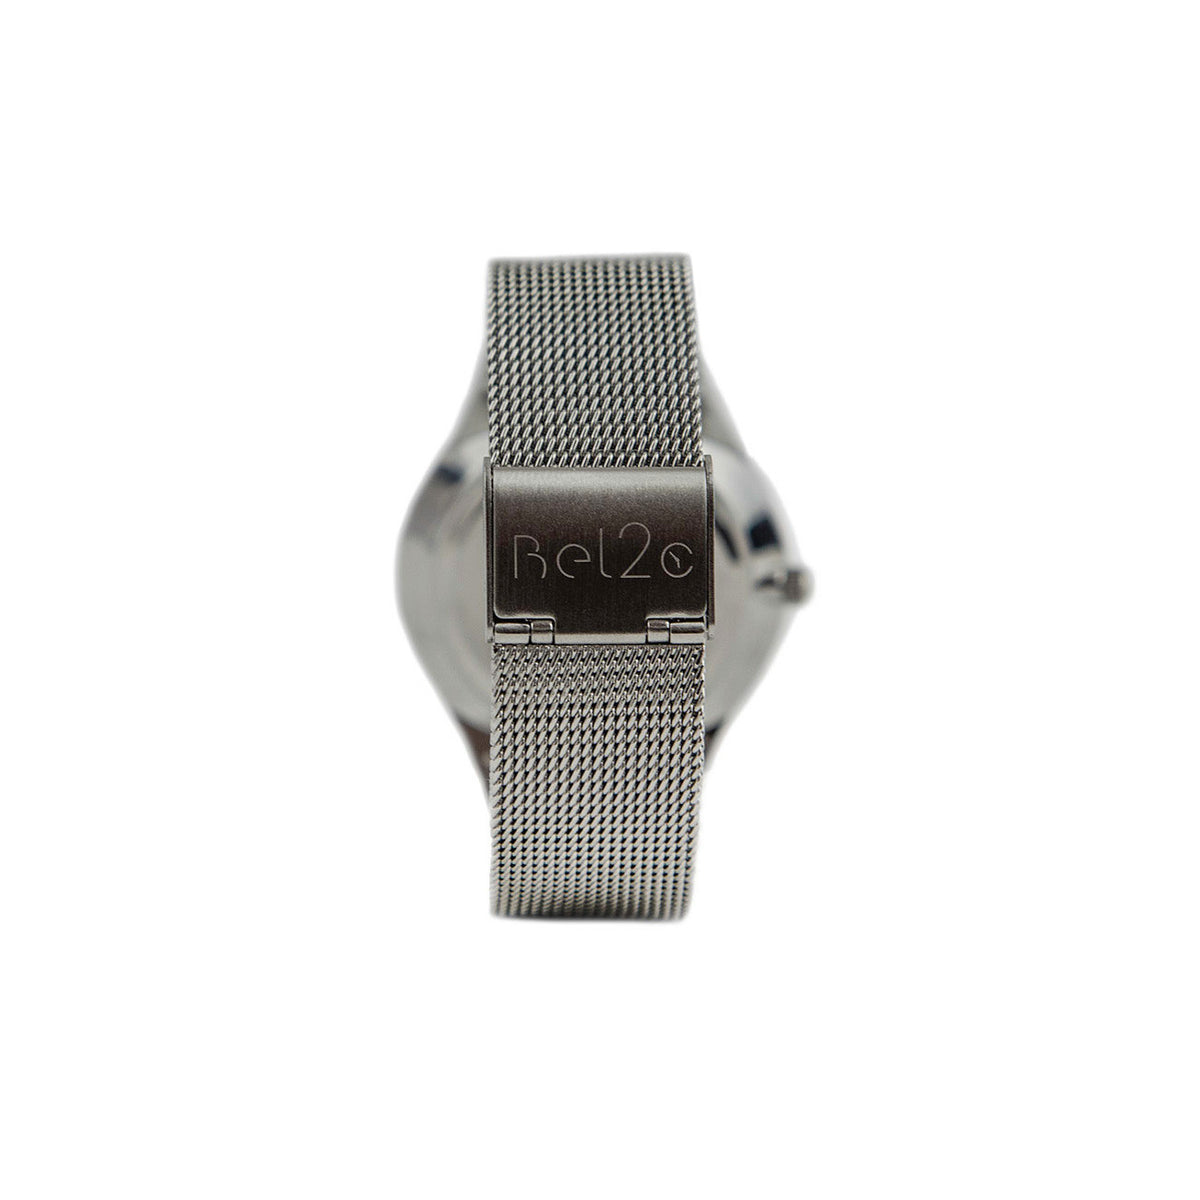 The buckle of Bel2c Lagom silver watch